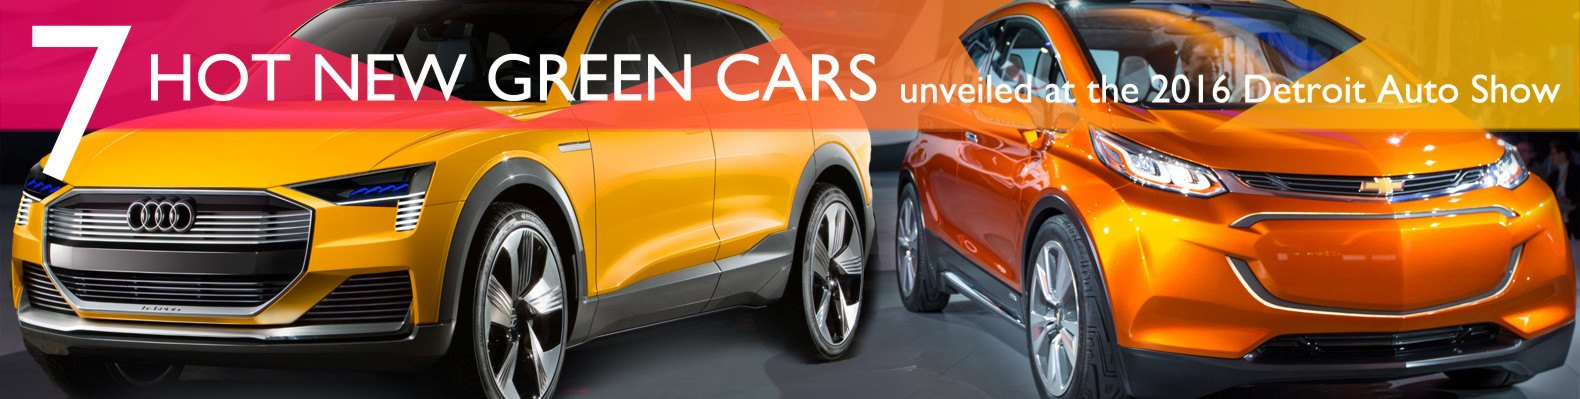 7 hot green cars just unveiled at the 2016 detroit auto show